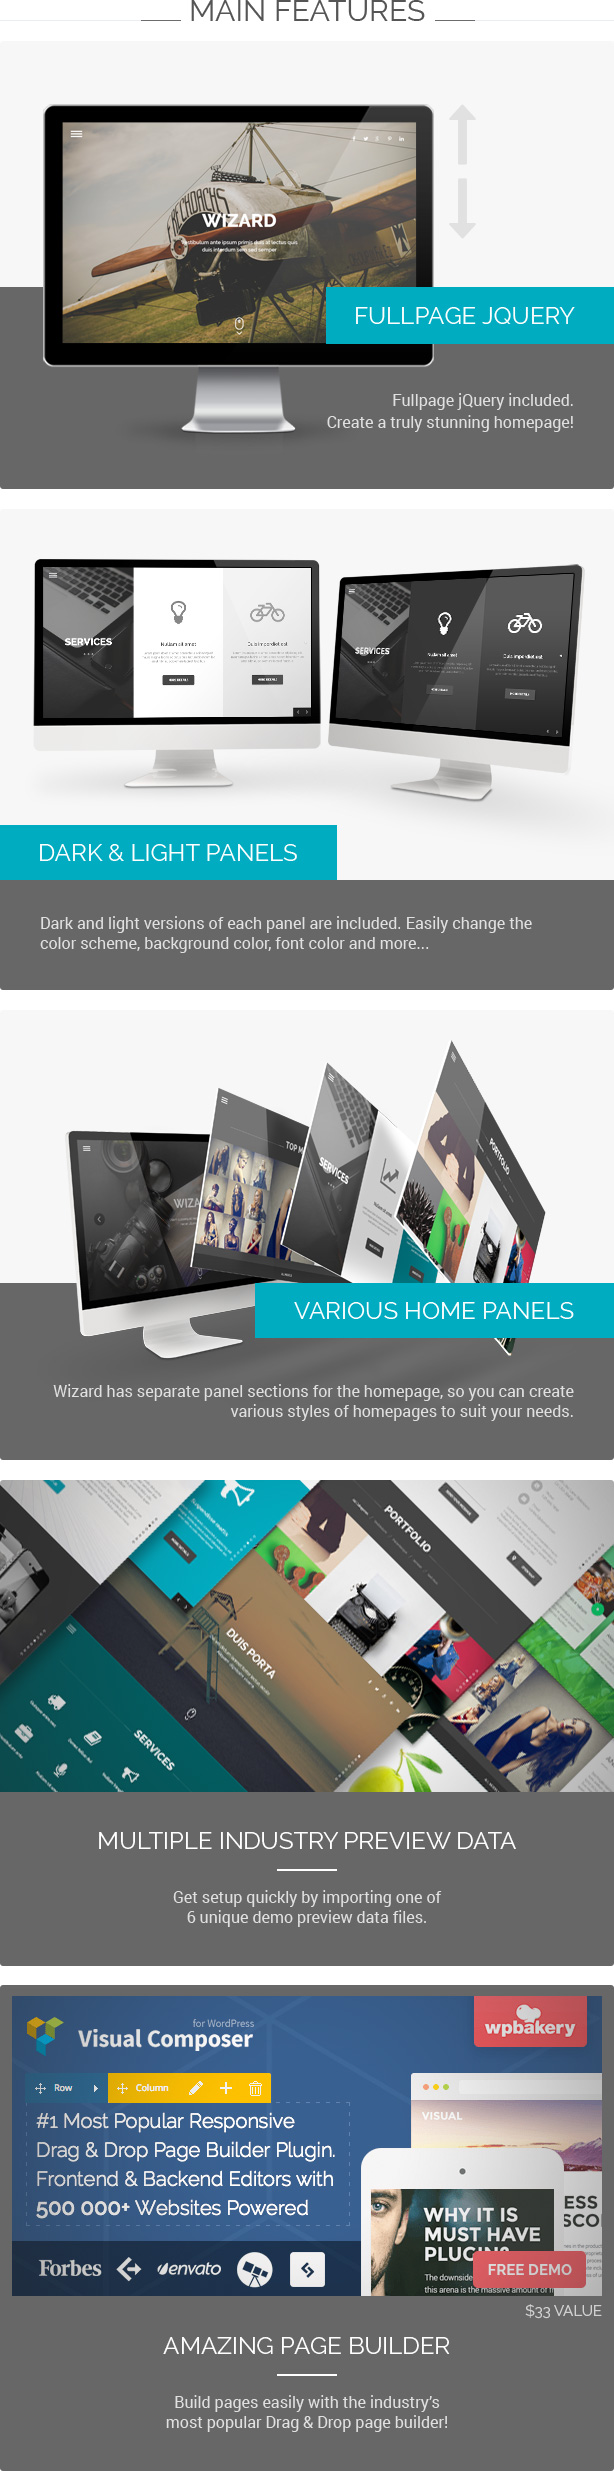 Wizard - Fullpage Portfolio WordPress Theme - 1